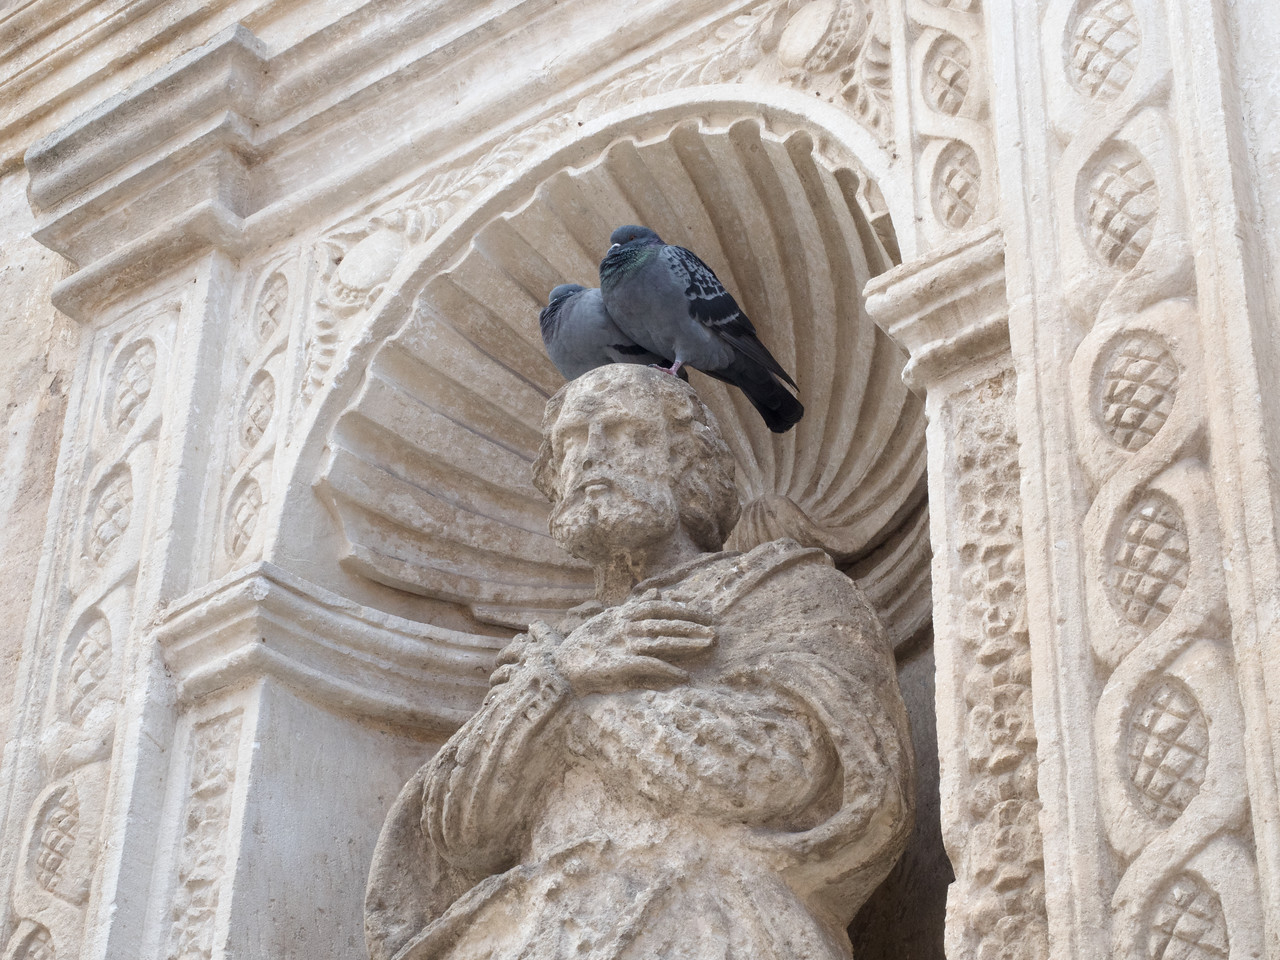 Rock Doves (Pigeons) are everywhere